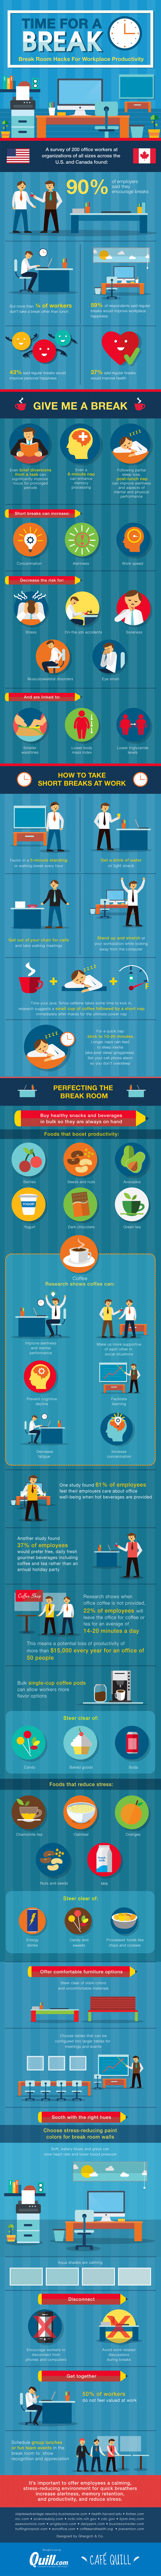 break room hacks infographic